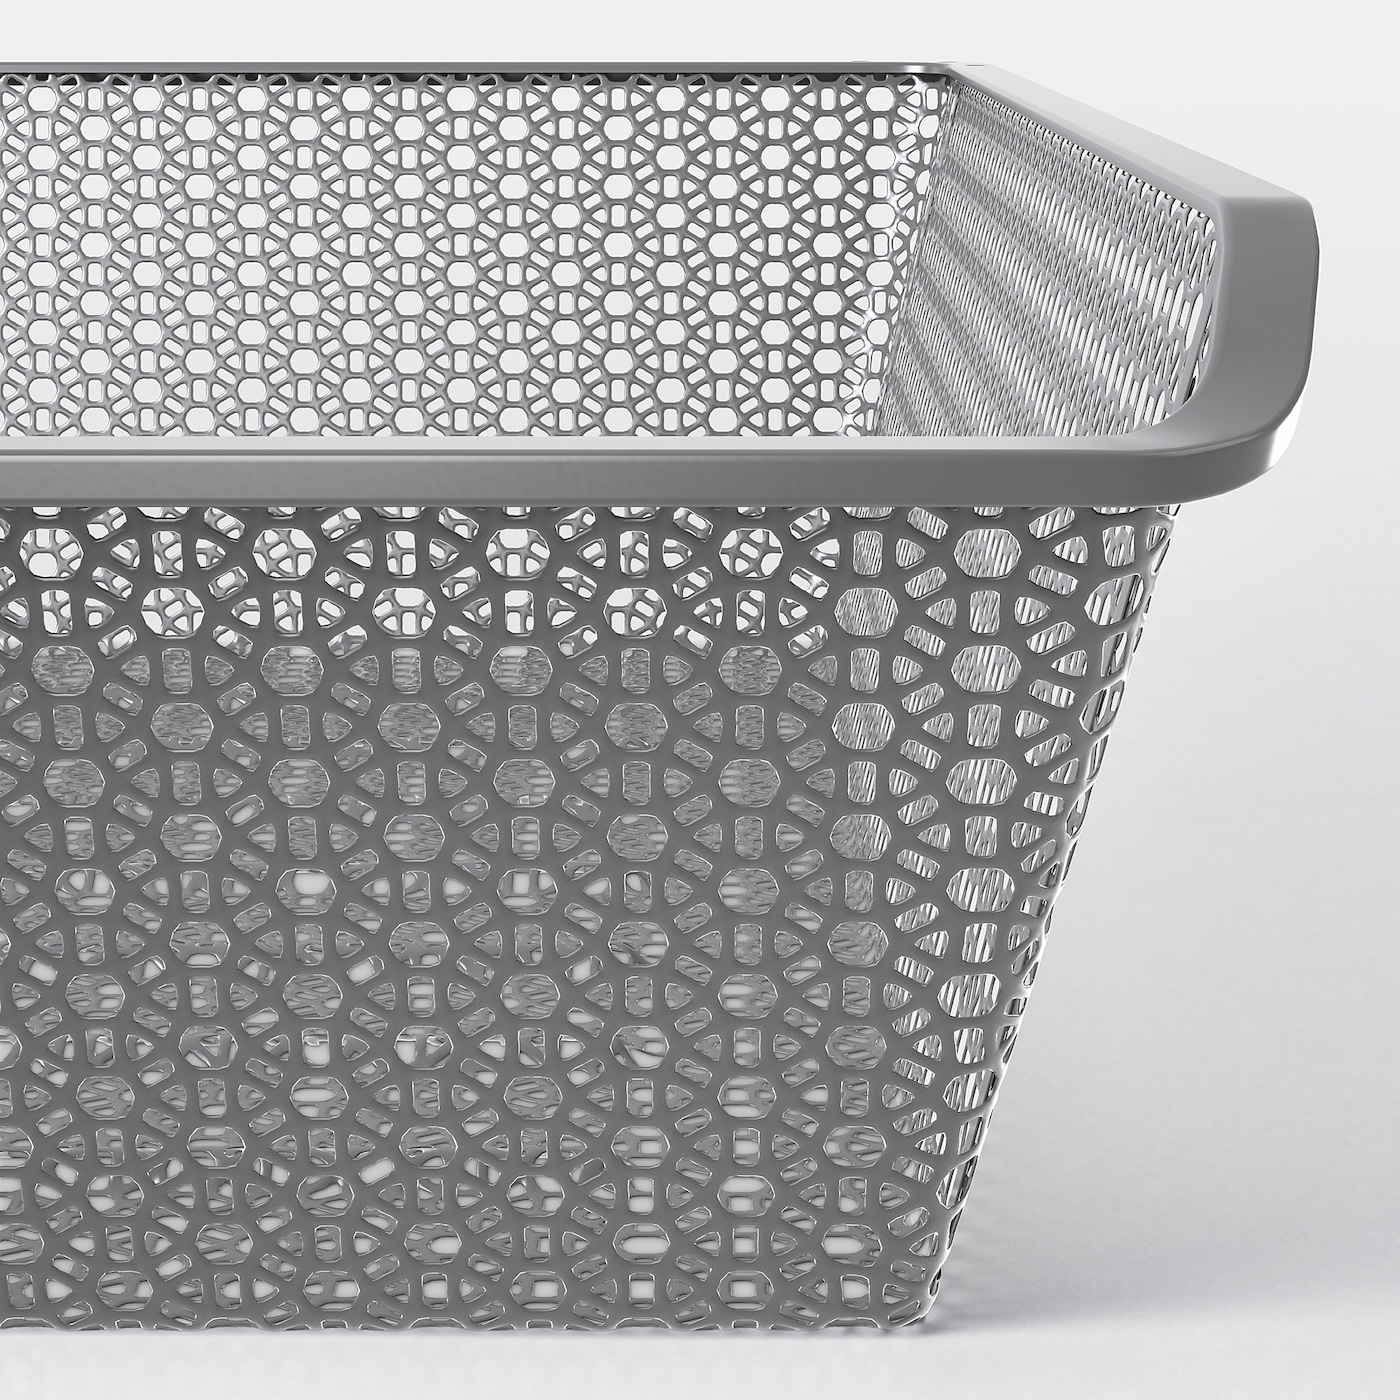 KOMPLEMENT Metal basket with pull-out rail, dark grey, 50x58 cm